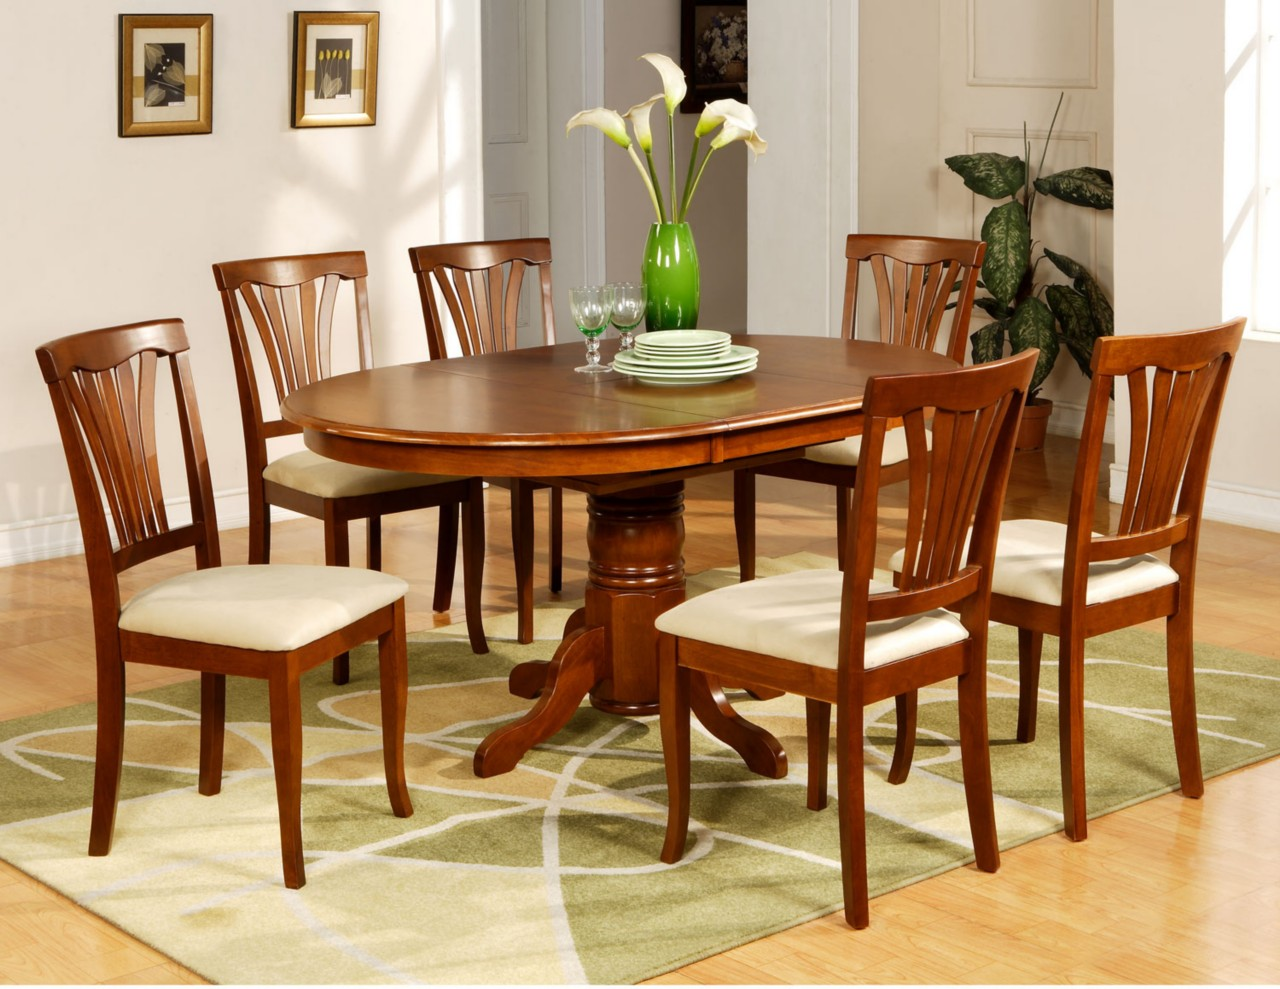 7 pc avon oval dinette kitchen dining room table with 6 for Kitchen dinette sets